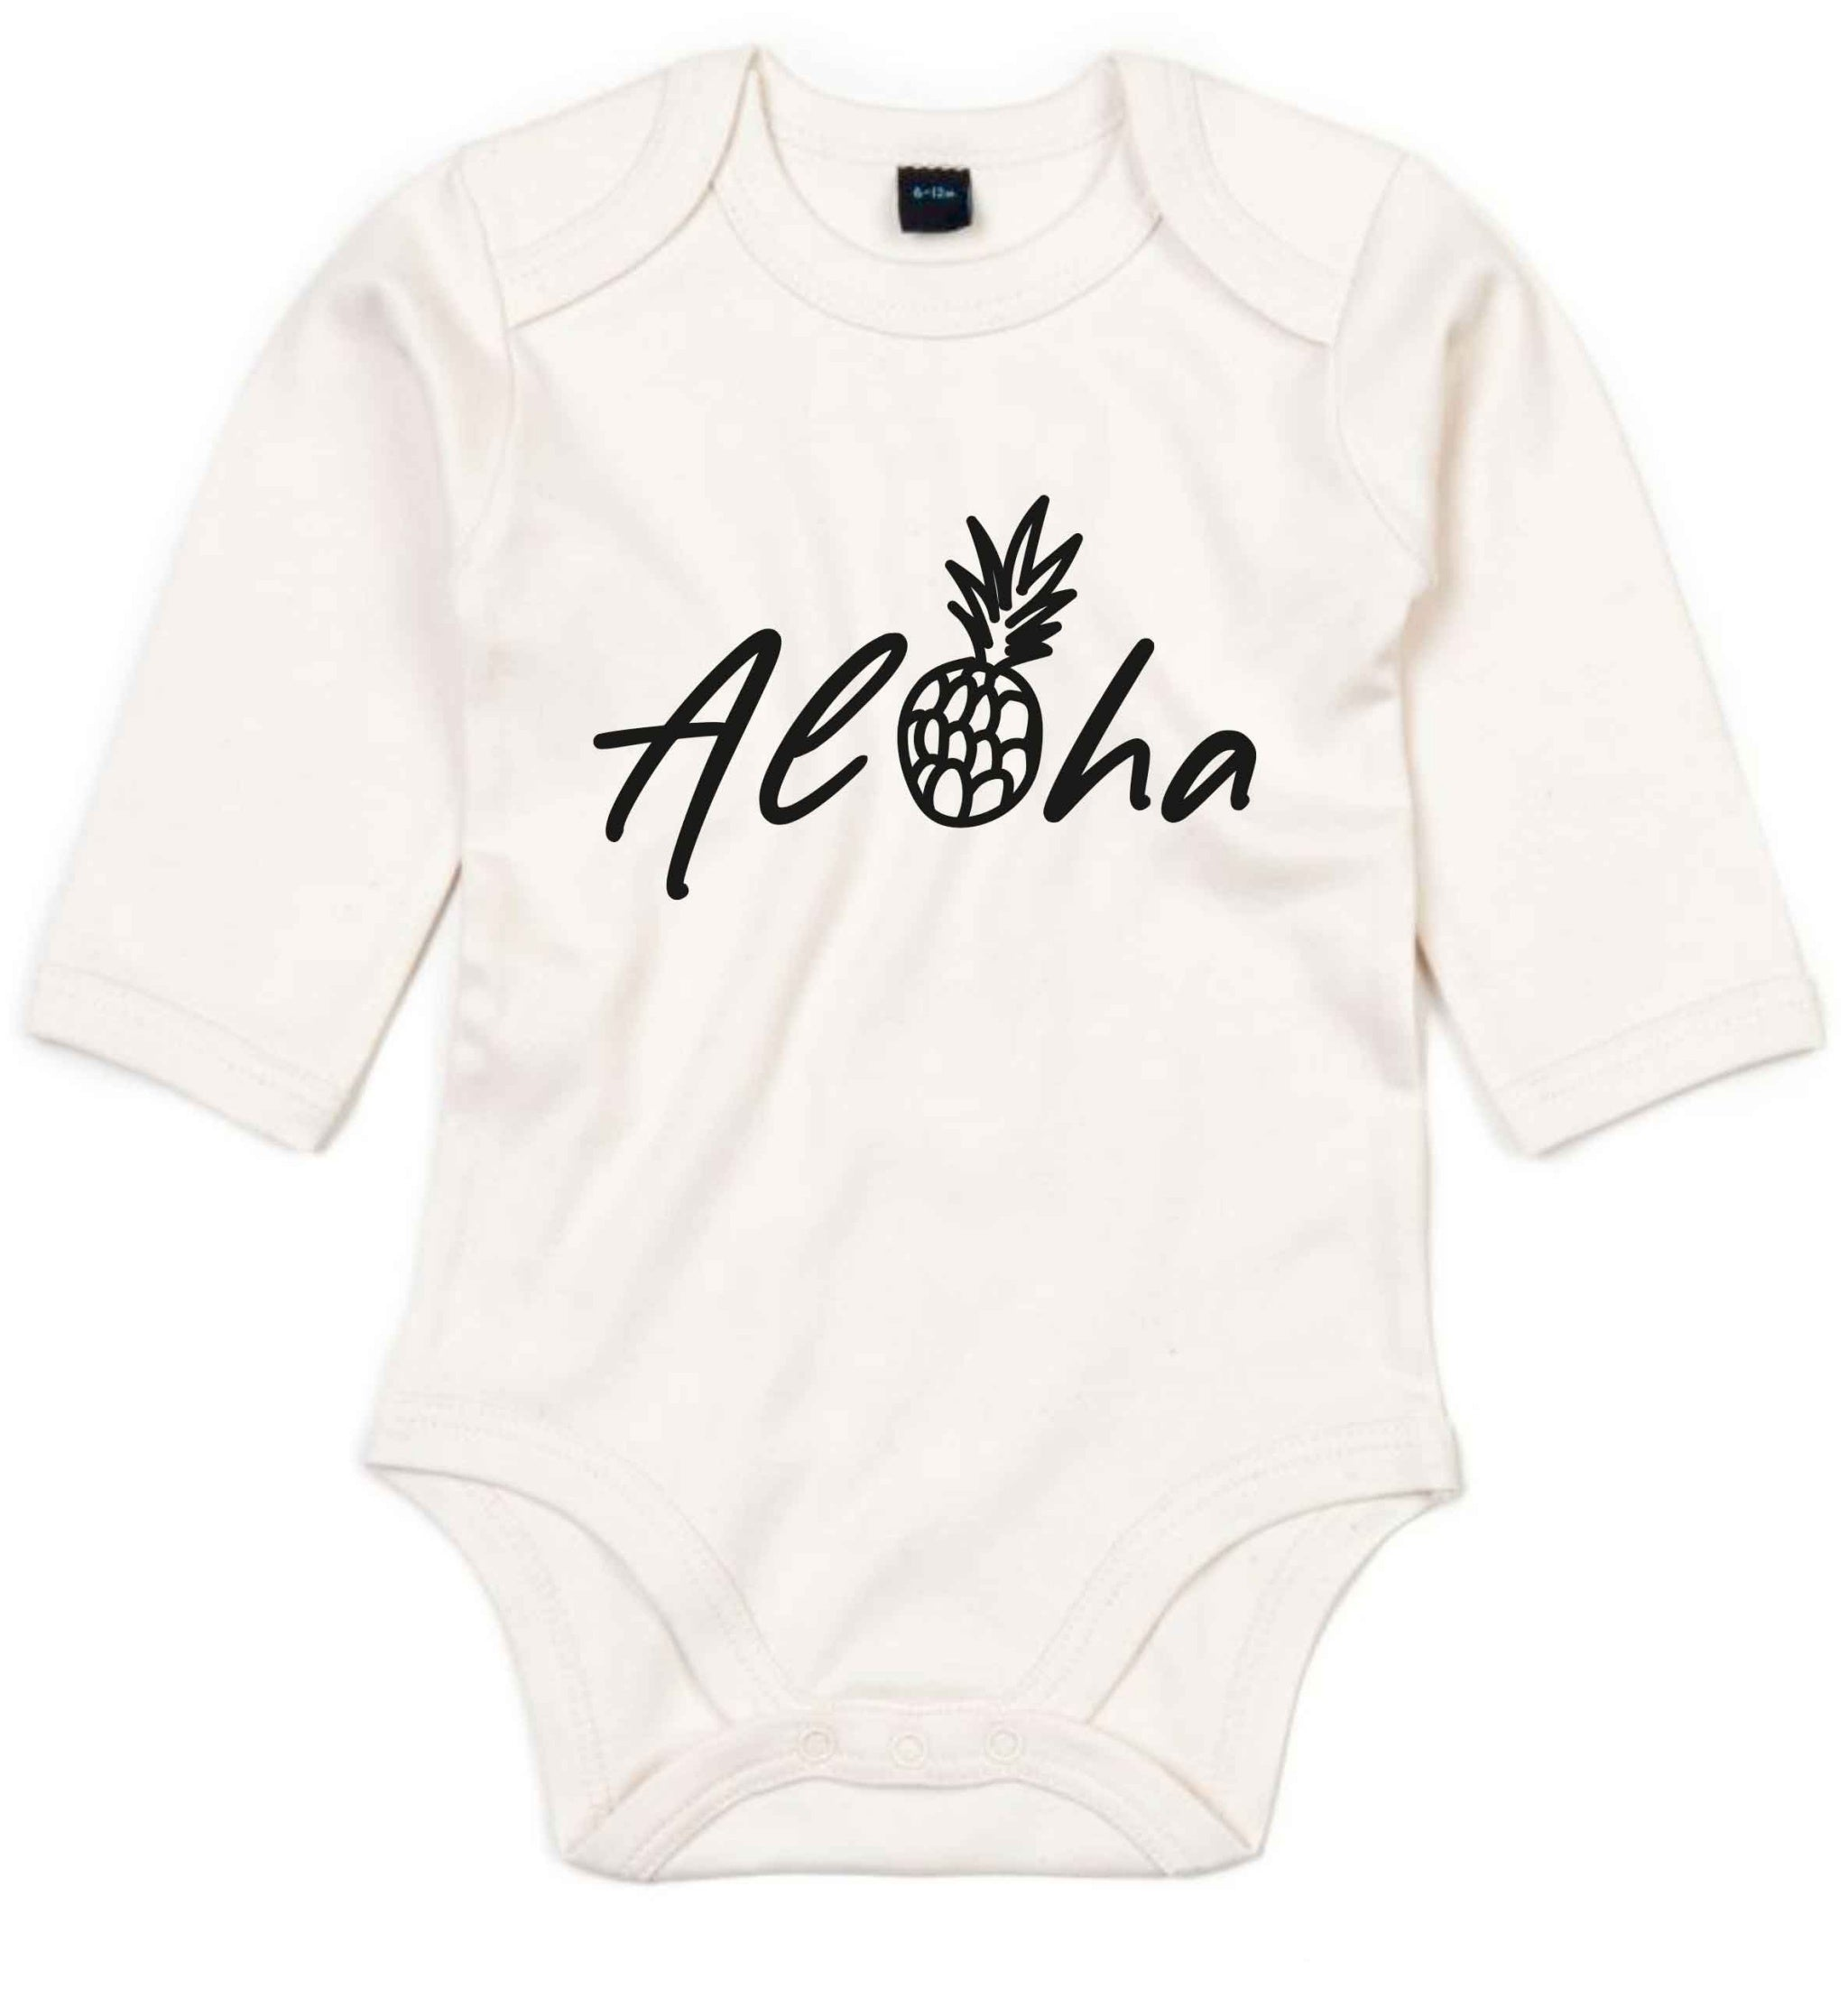 Aloha Baby Long-Sleeved Body